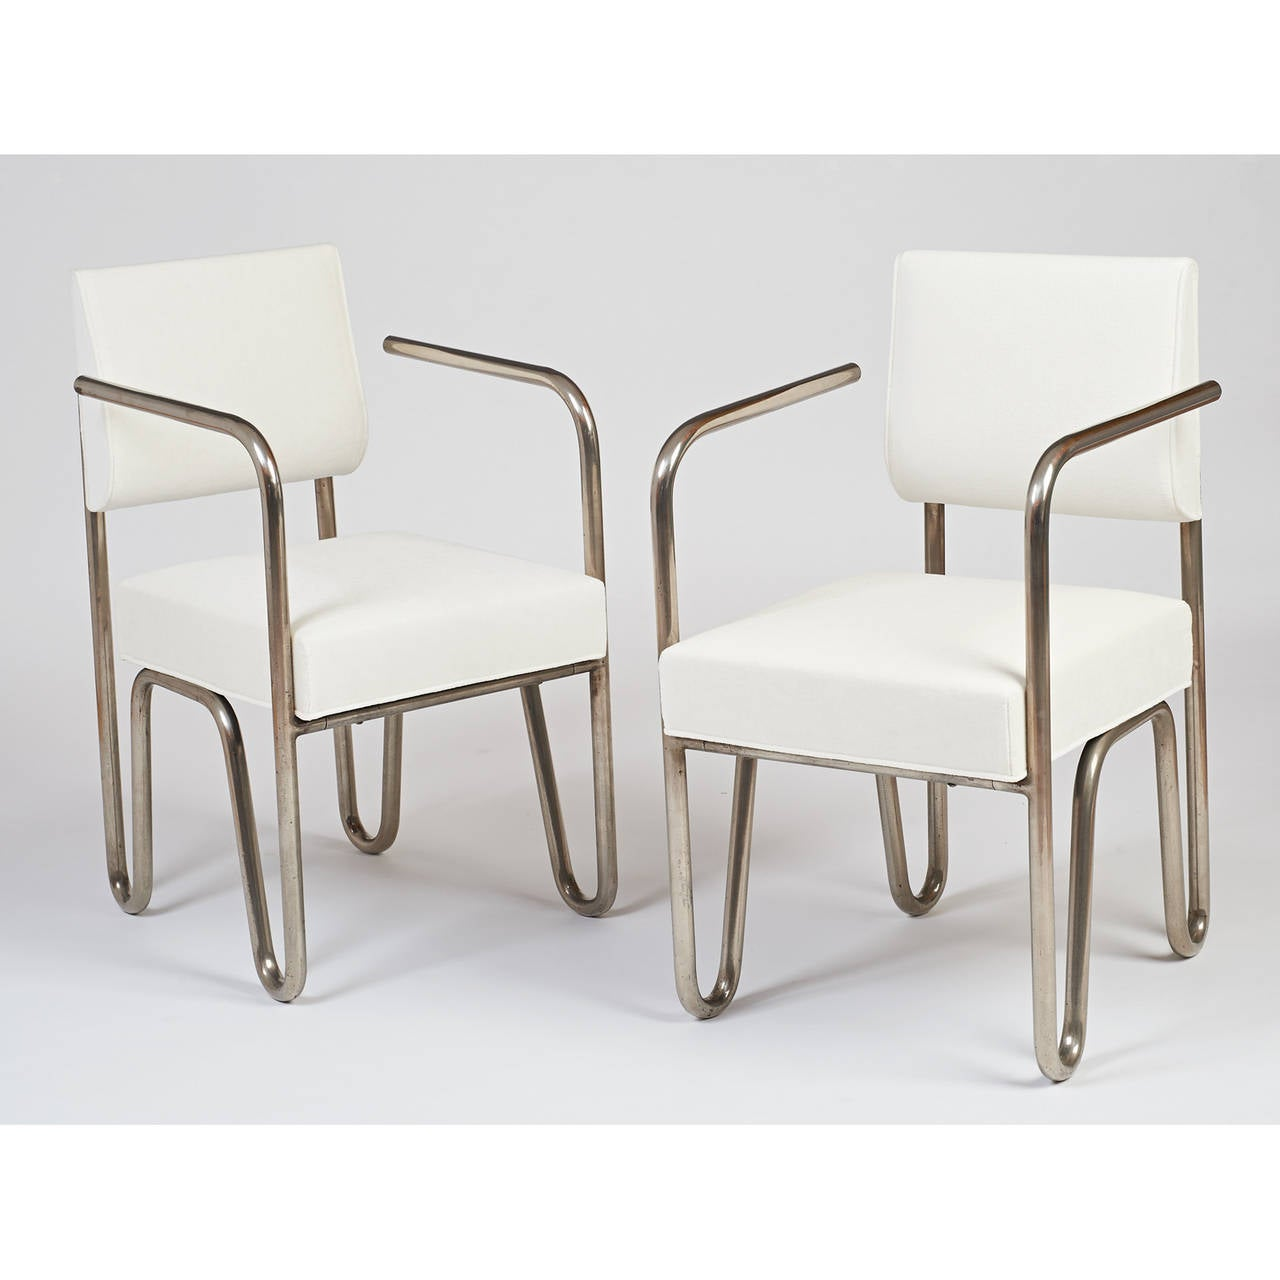 Early Pair of Tubular Metal Chairs by Andre Sornay, ca.1929 2